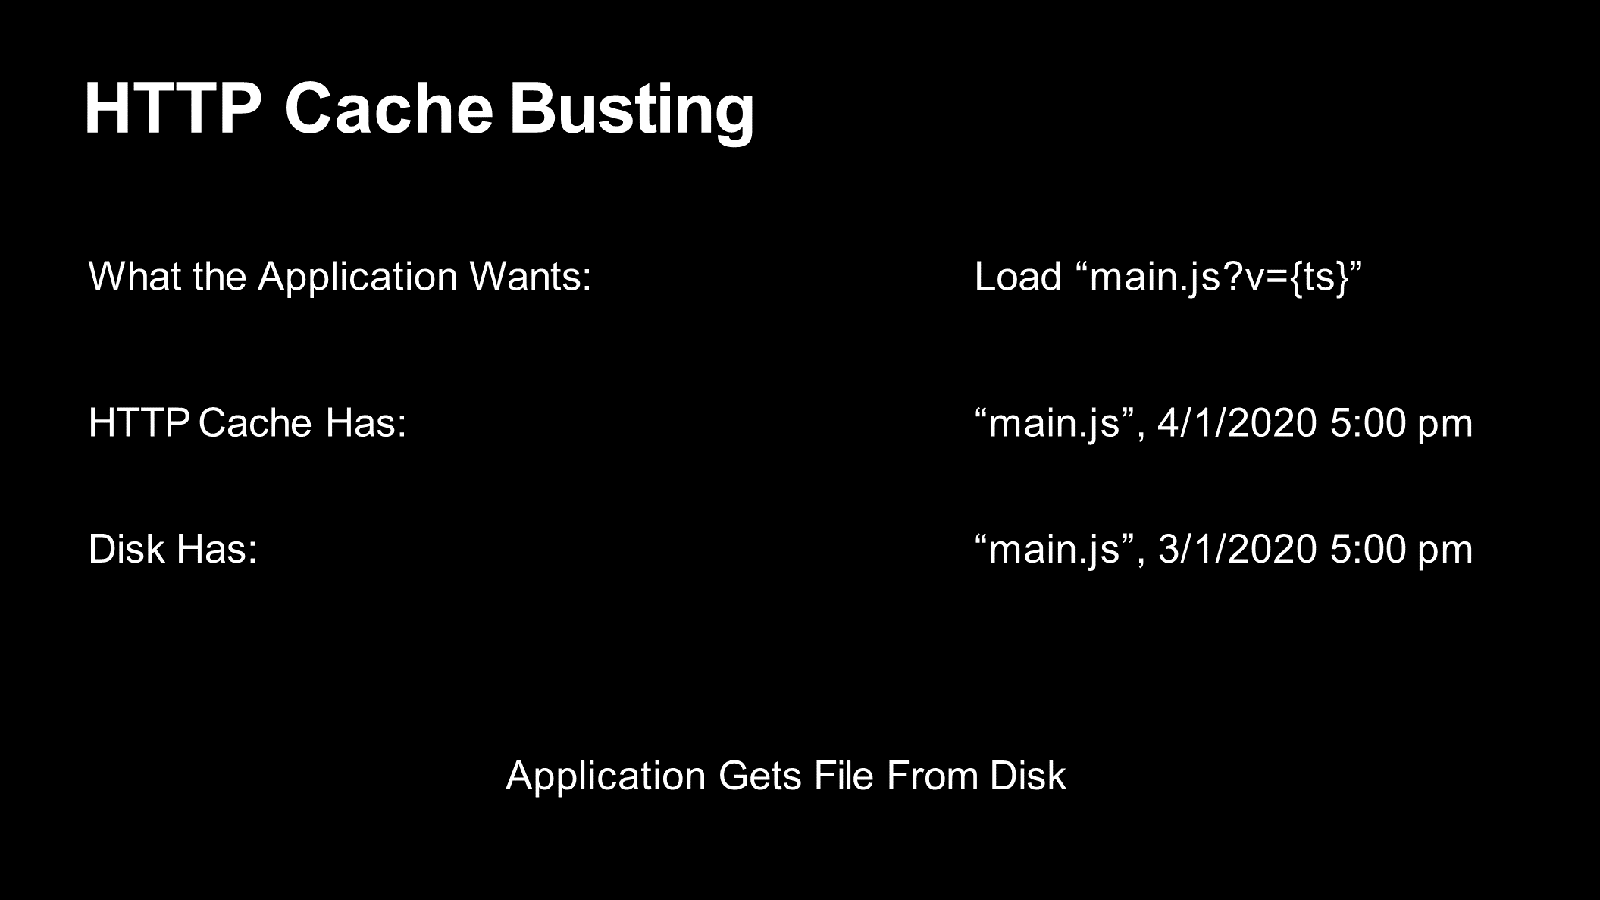 HTTP cache busting where application gets file from disk